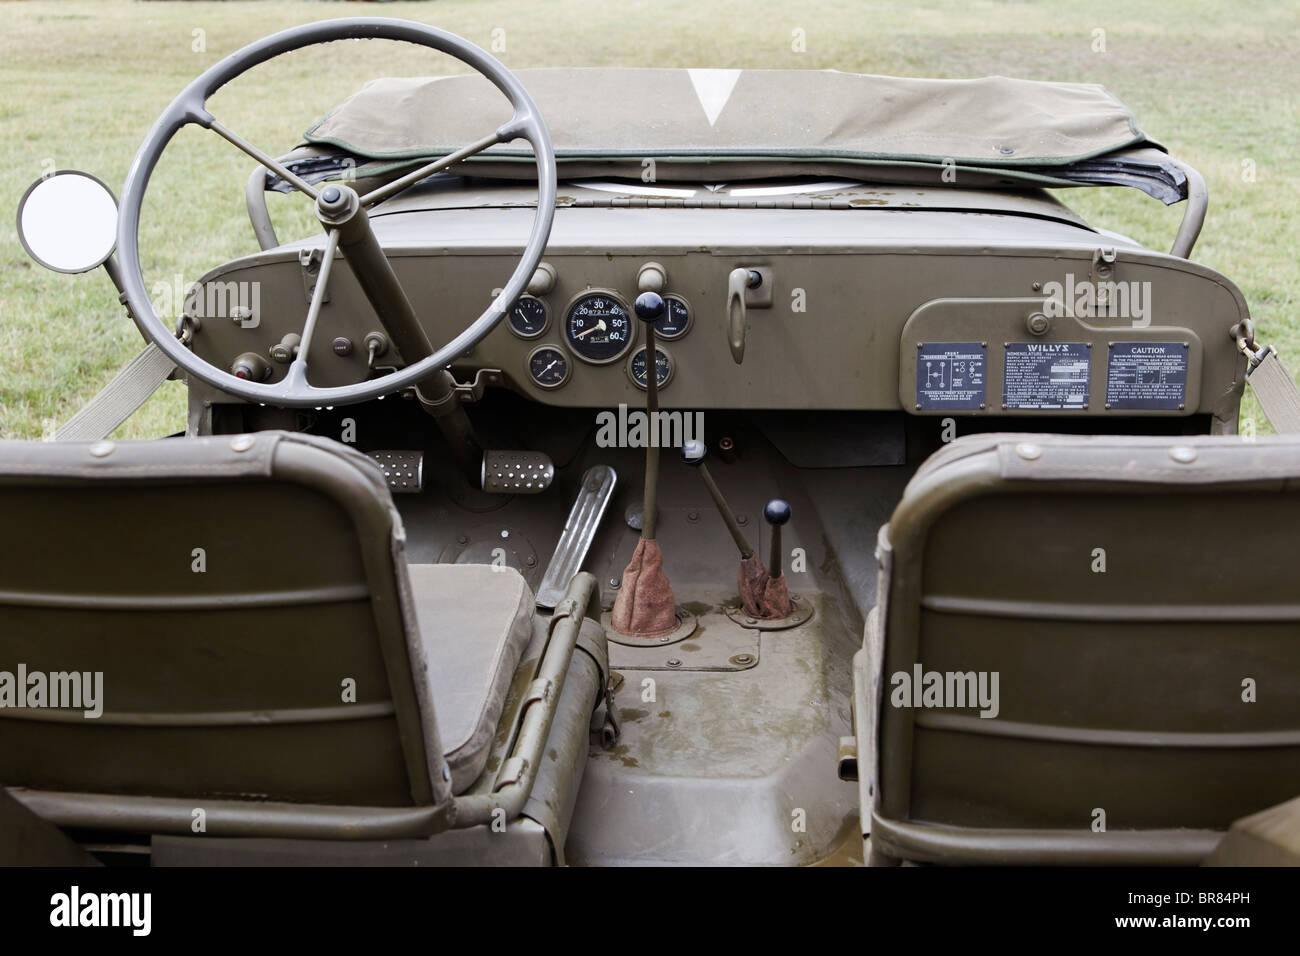 hight resolution of willys mb us army quarter ton selectable 4x4 dual ratio jeep dashboard controls gear gate diagram specification plate